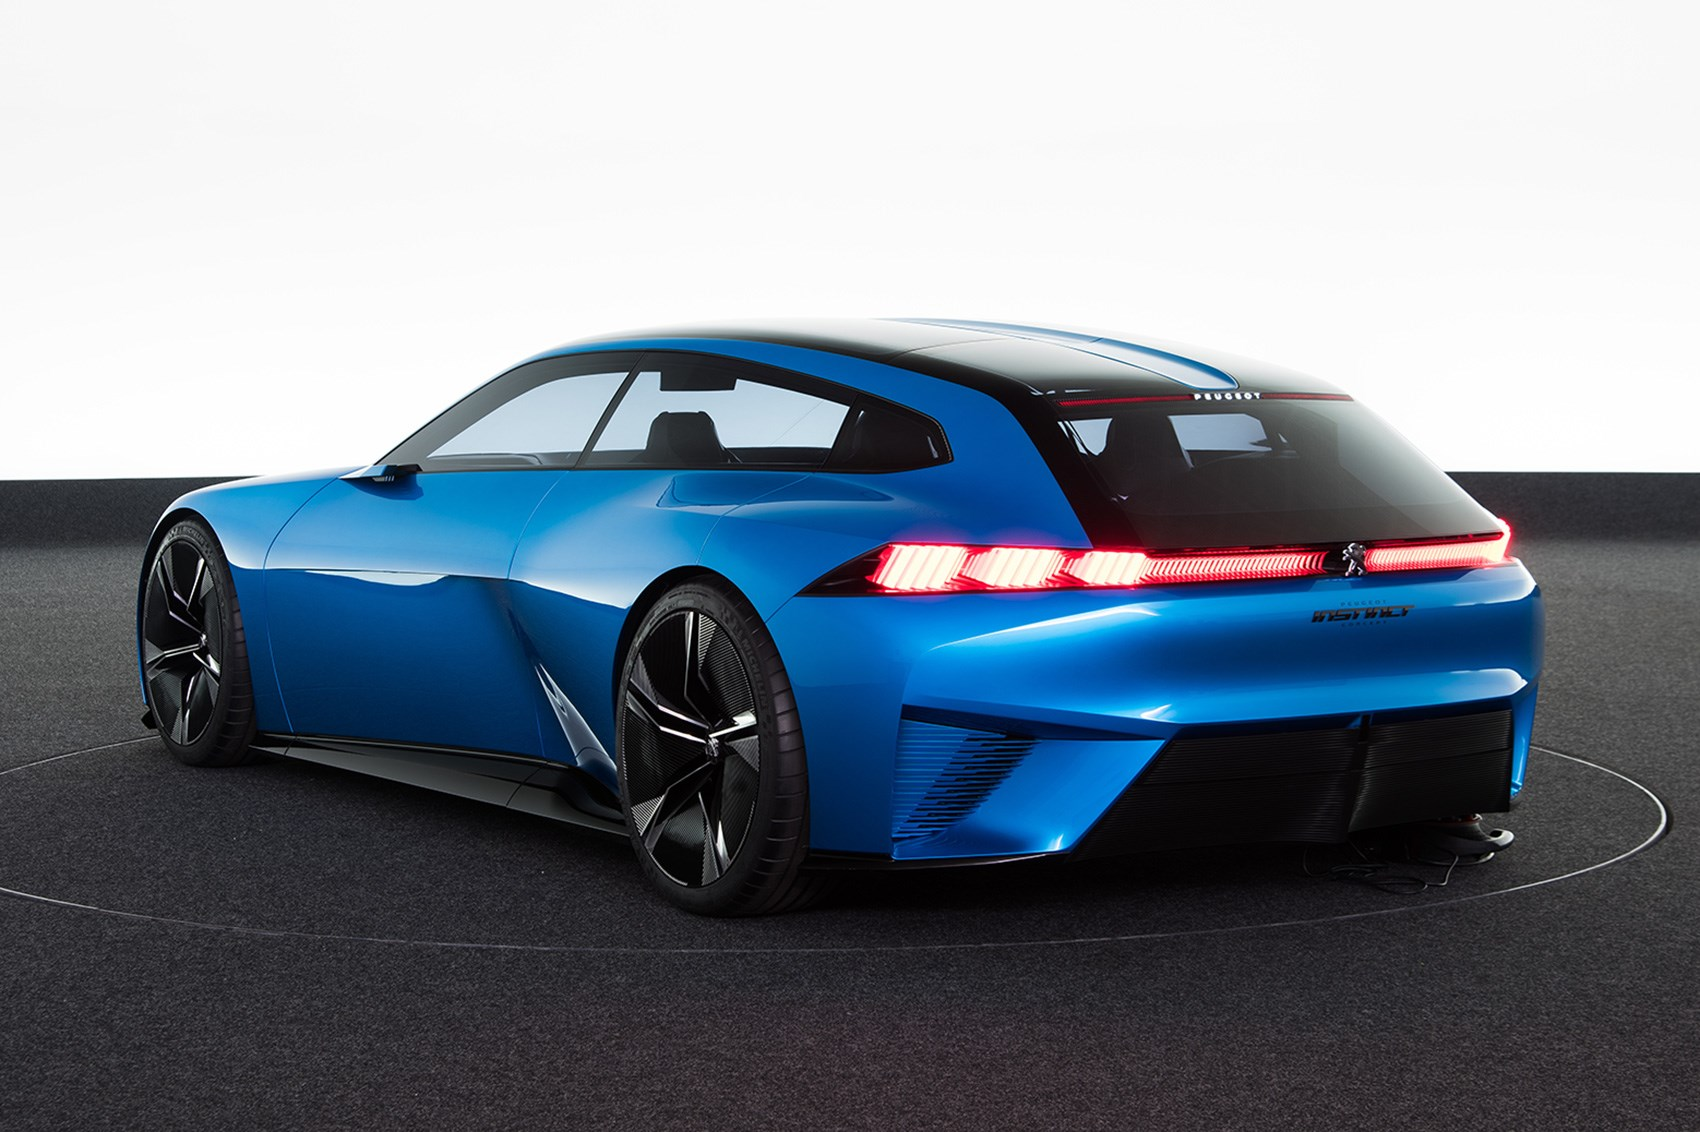 8 Show Stopping Details On The Peugeot Instinct Concept By